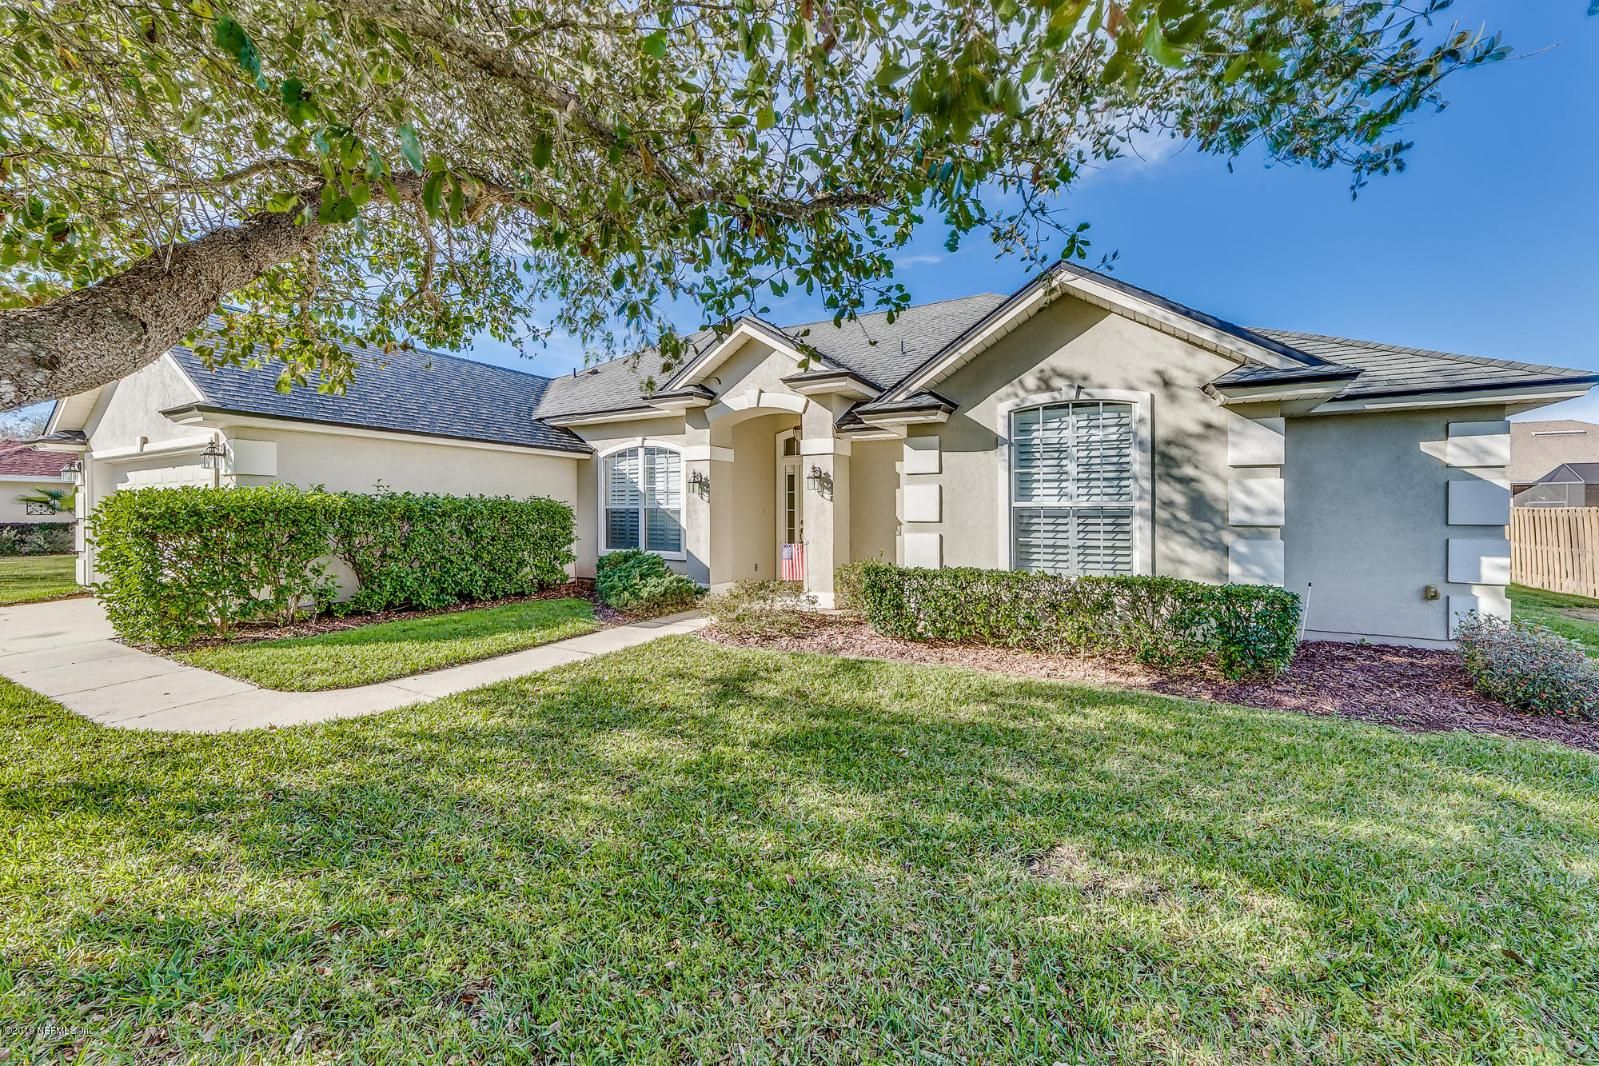 d0925ffbfe179869a5cb801da9fe5061 - Better Homes And Gardens Realty Jacksonville Fl